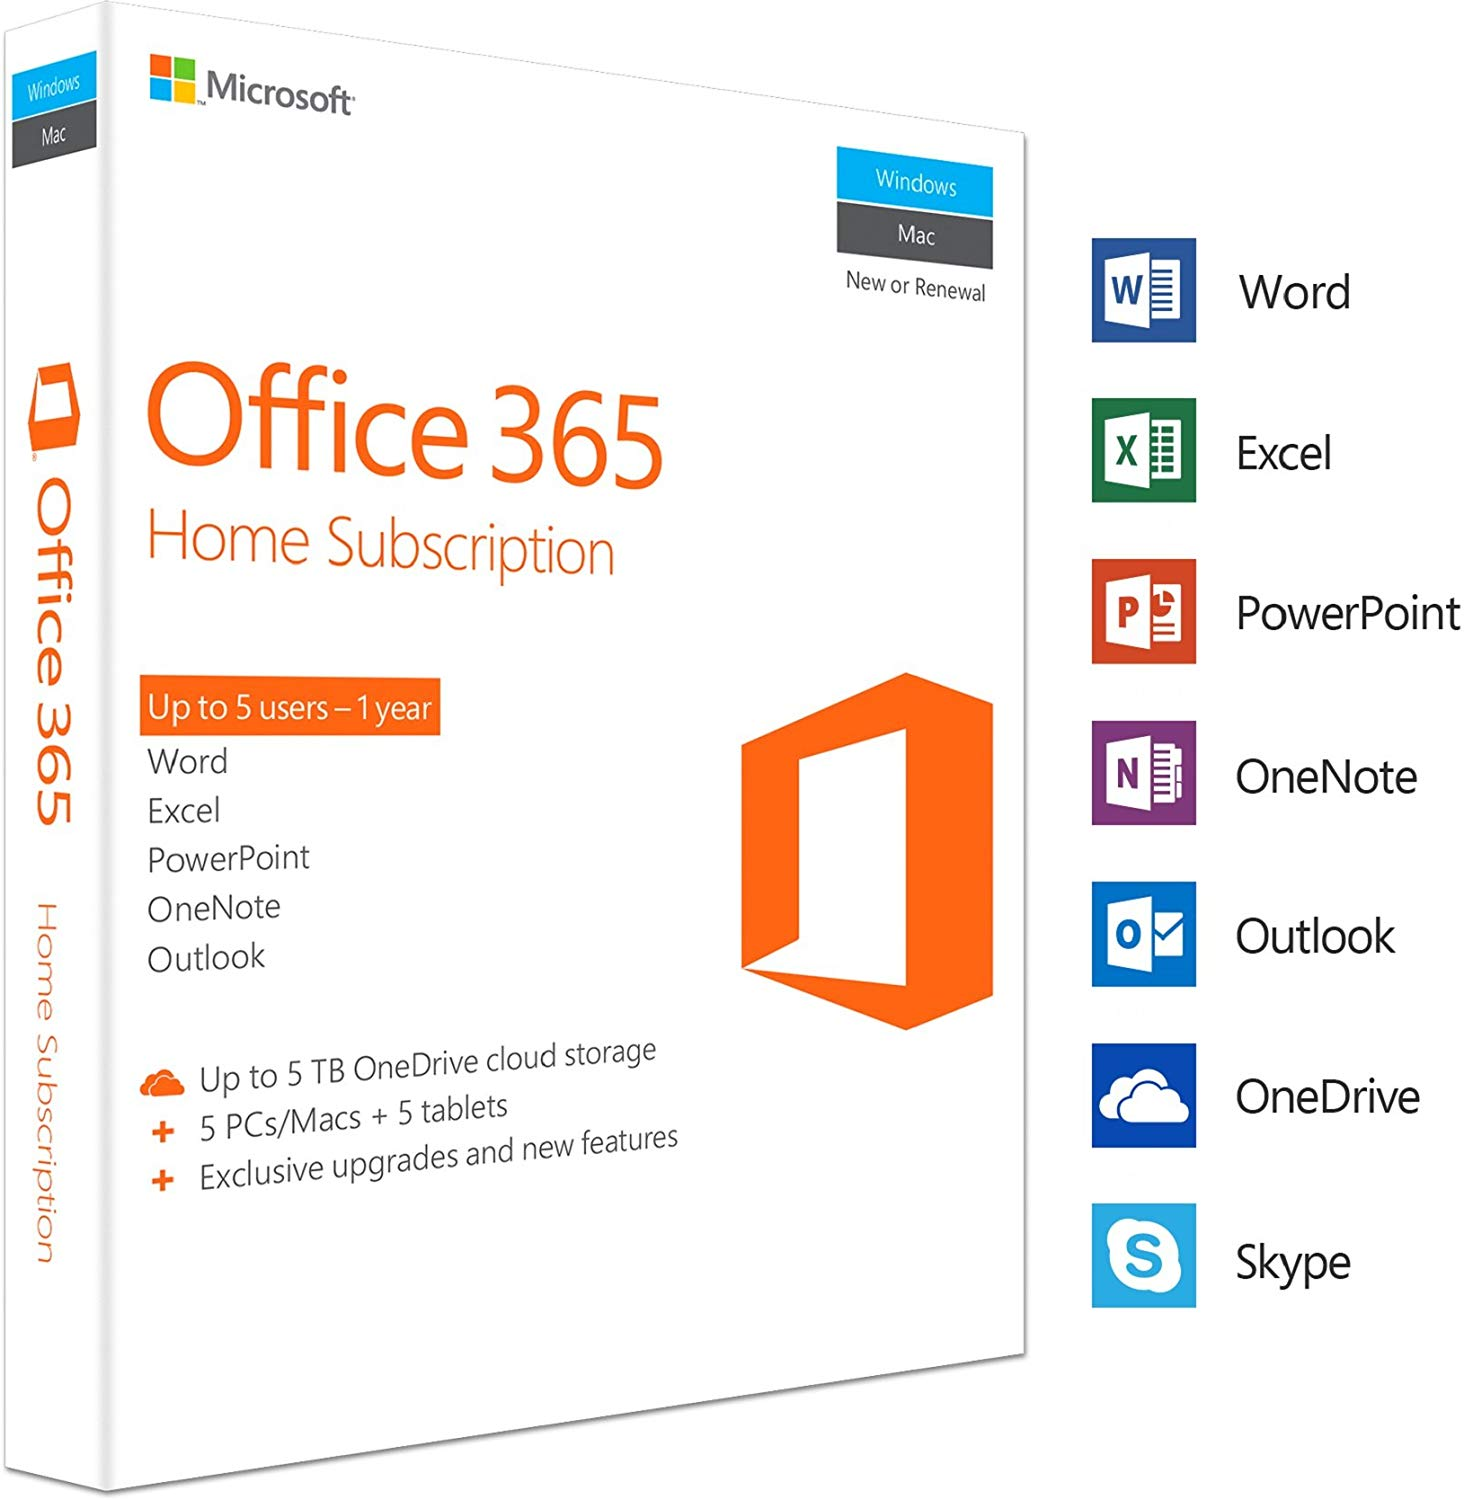 MICROSOFT OFFICE 365 Crack + Licence Key Free Download